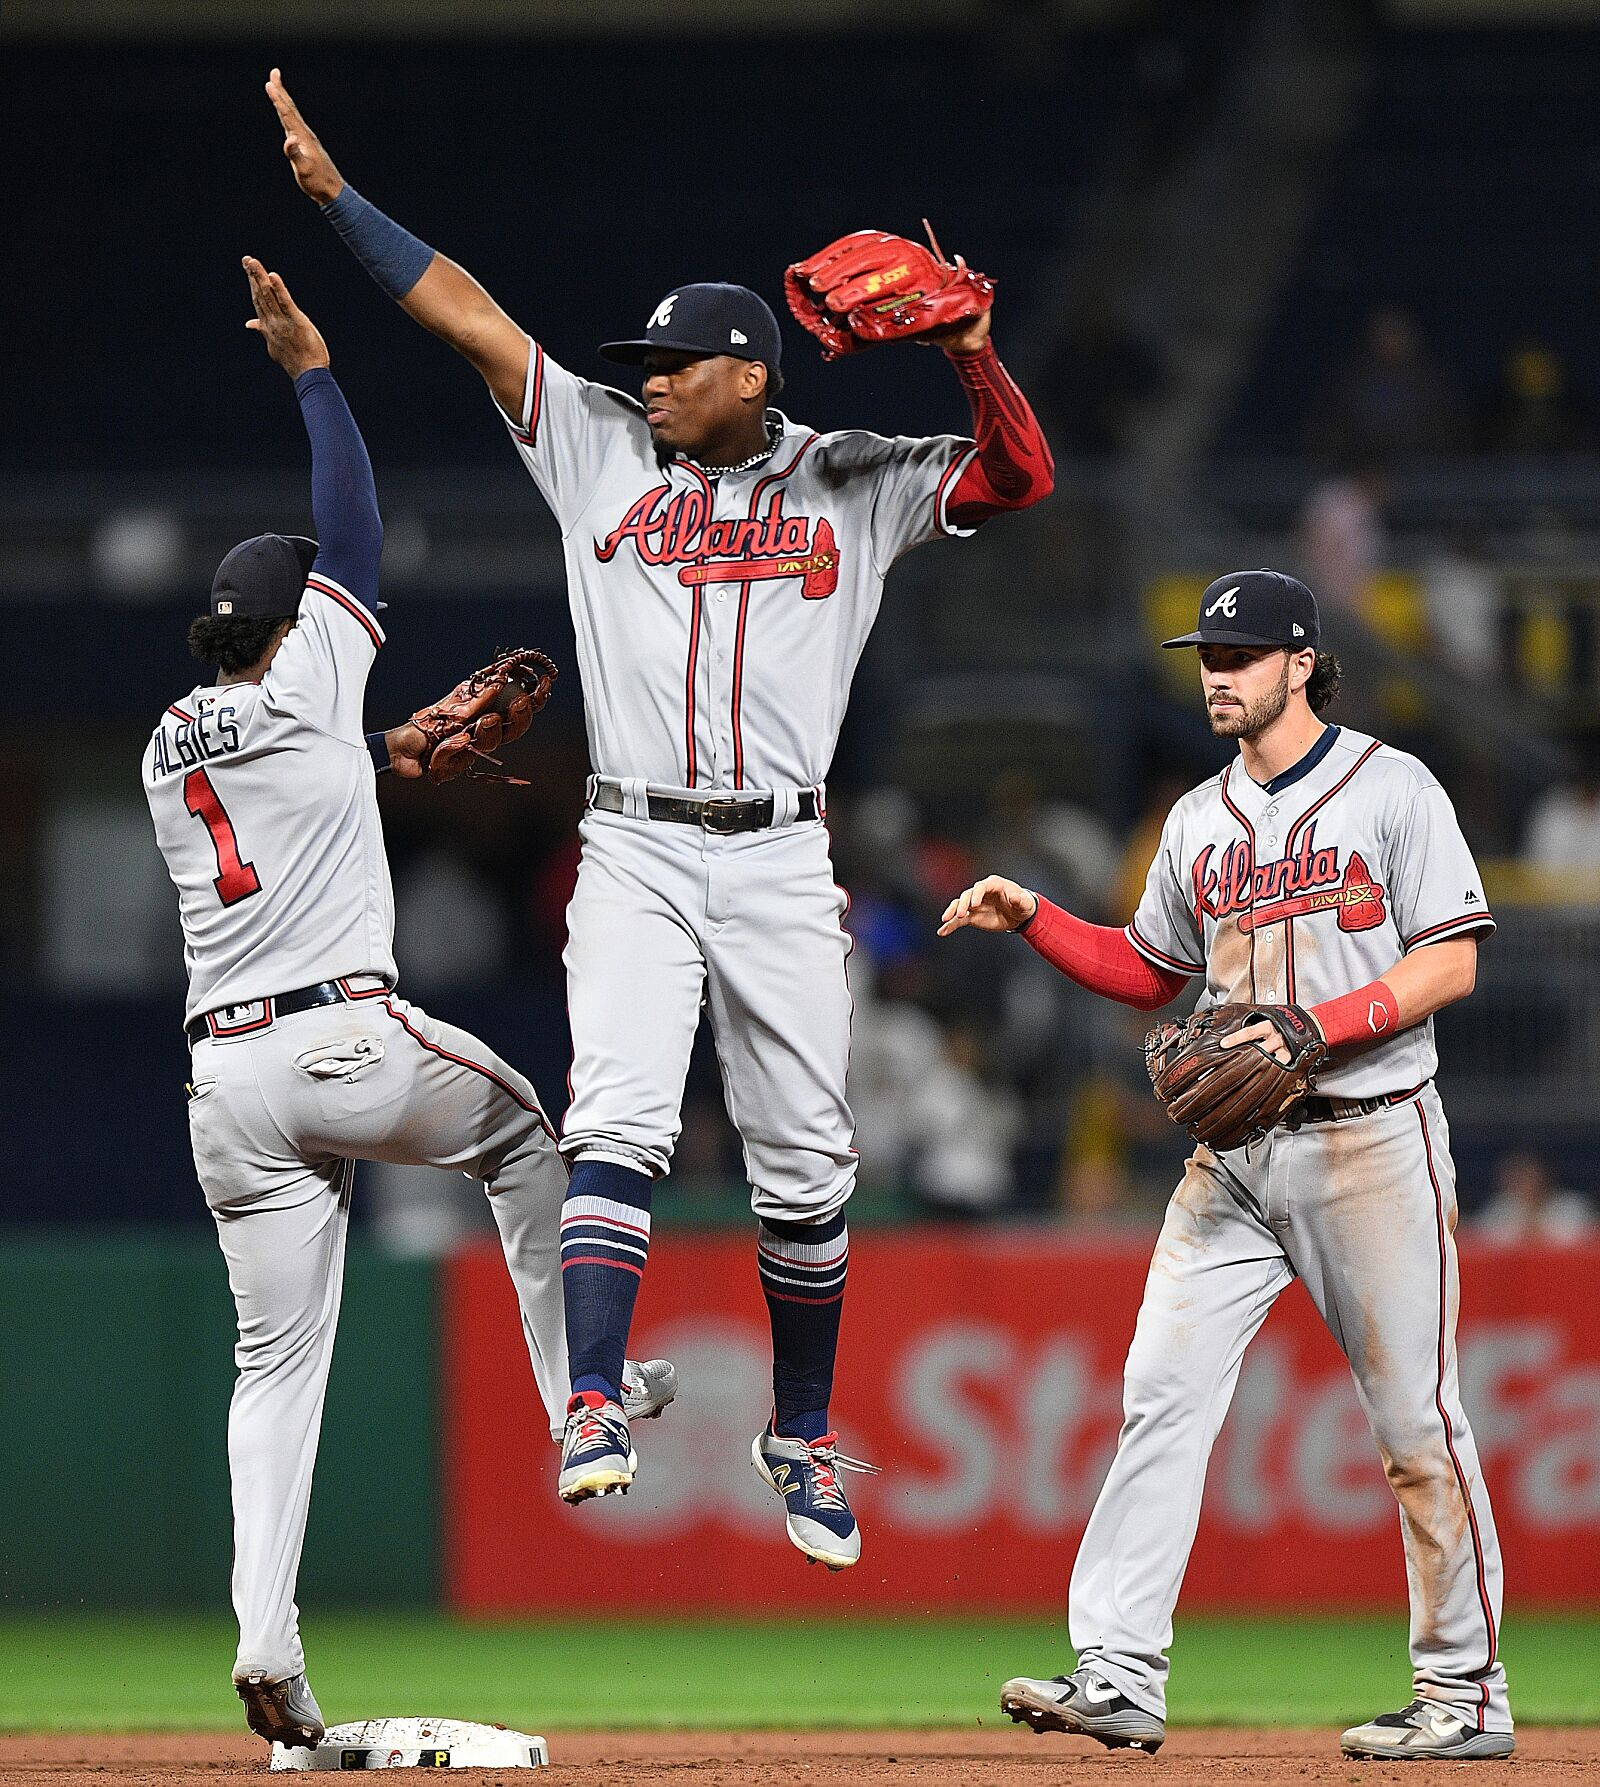 Atlanta Braves postseason rotation: Touki Toussaint